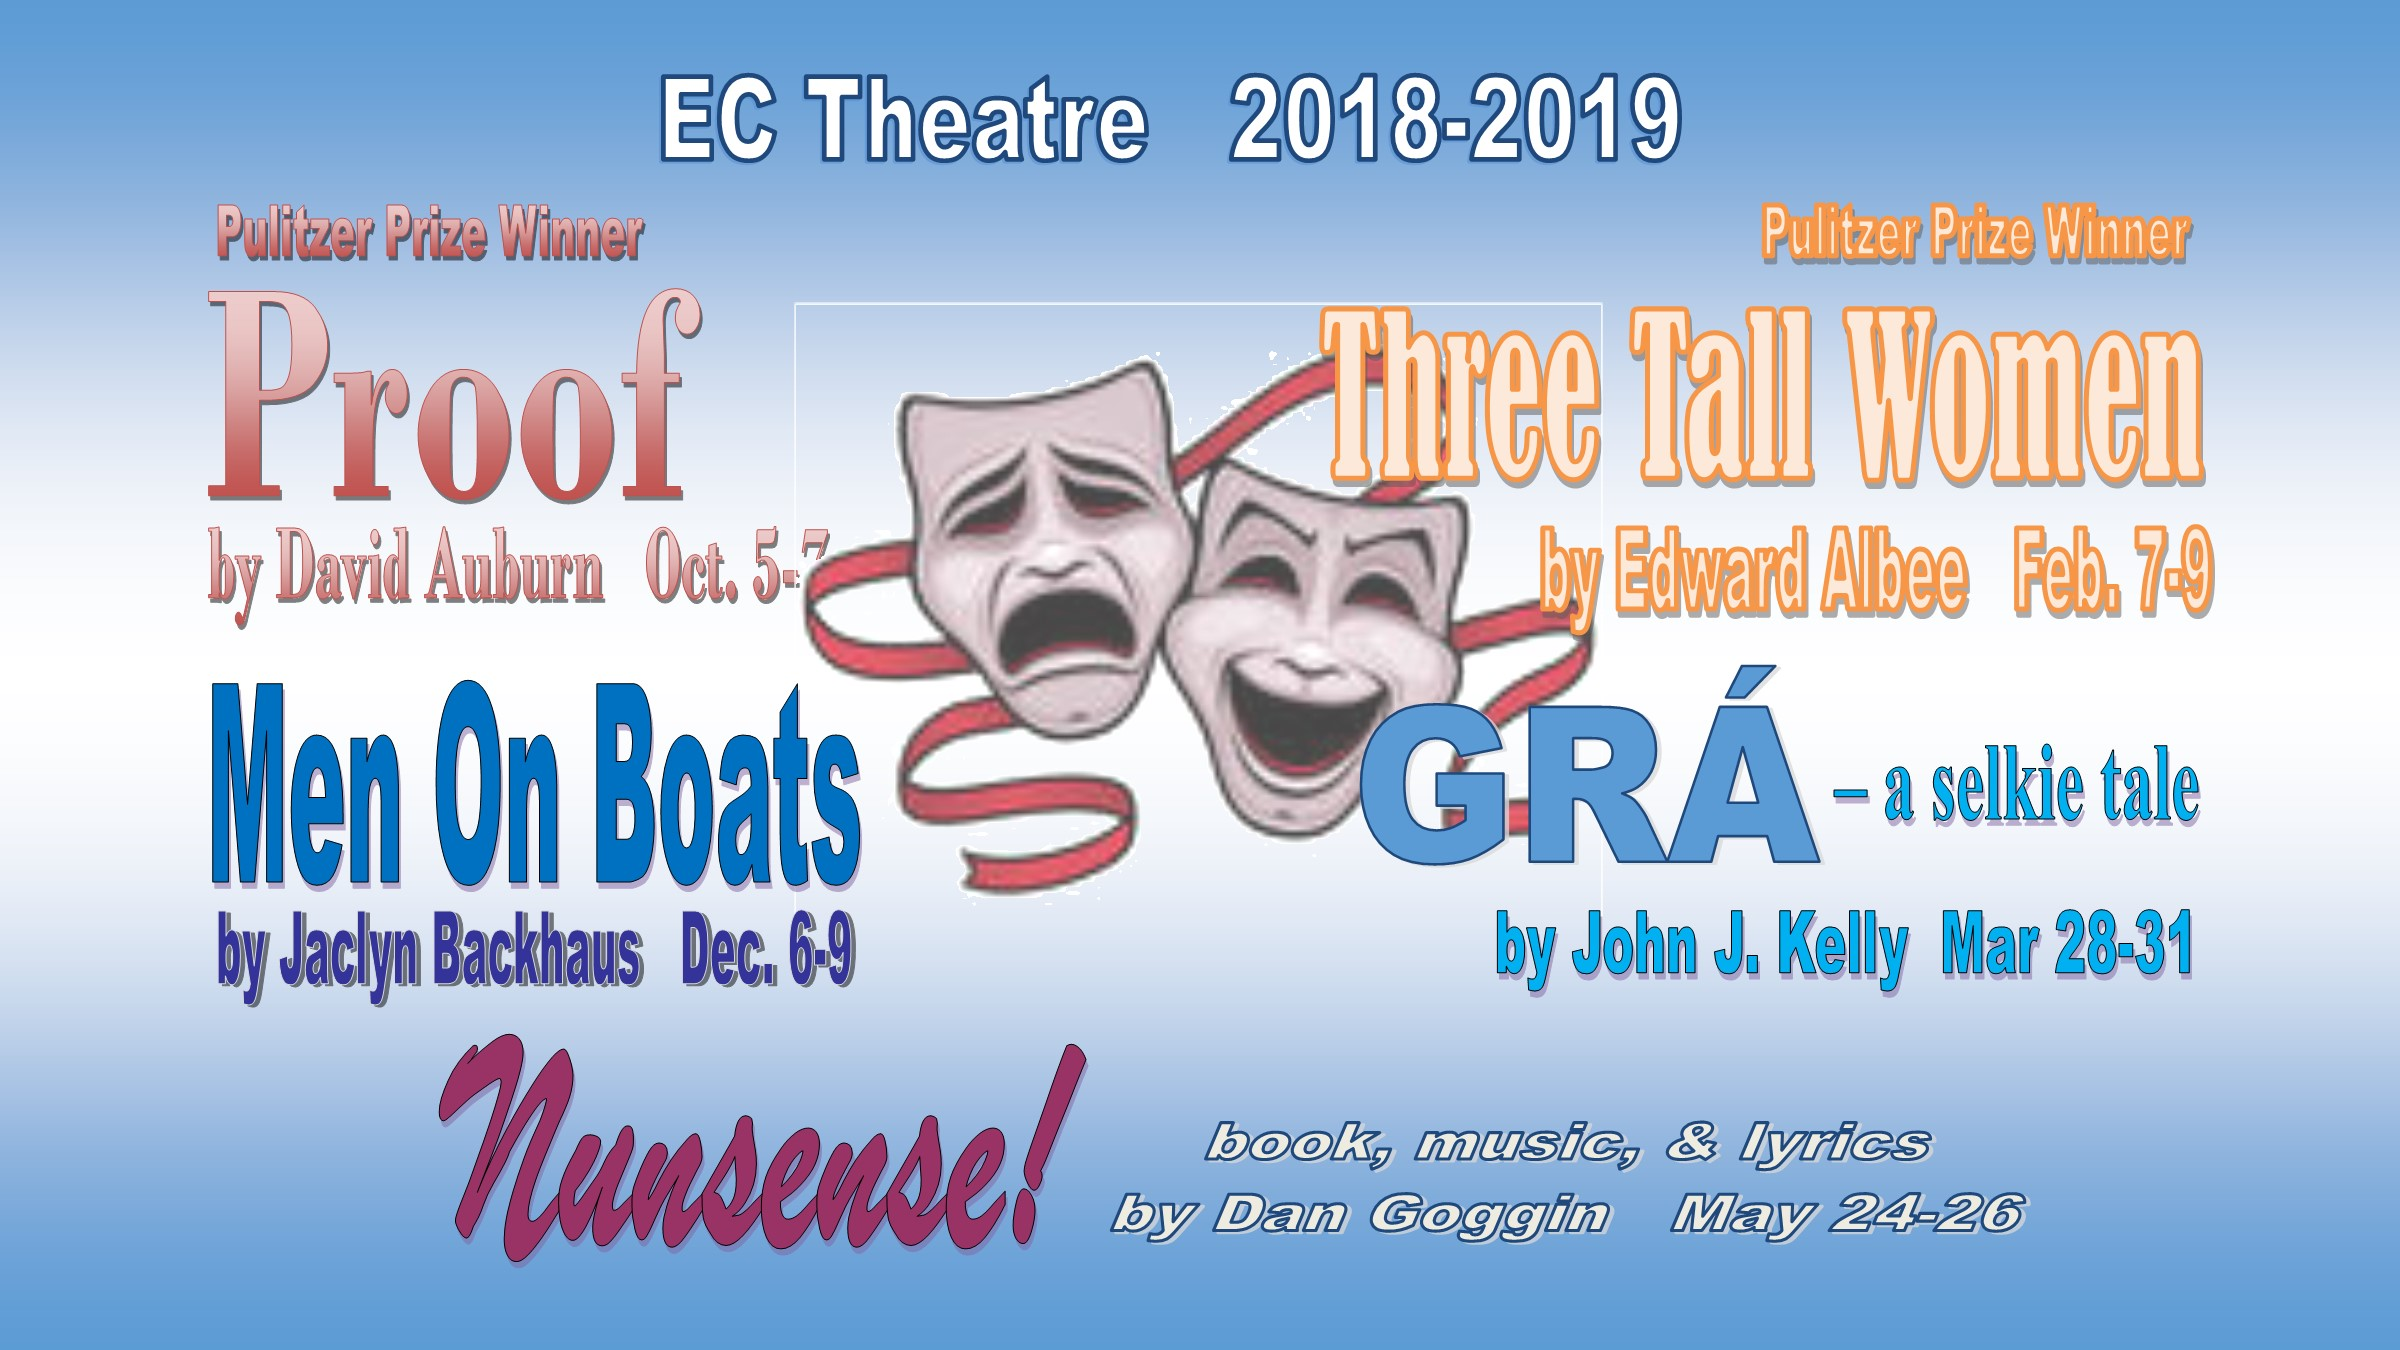 Image of 2018-2019 Theatre Season Show Schedule